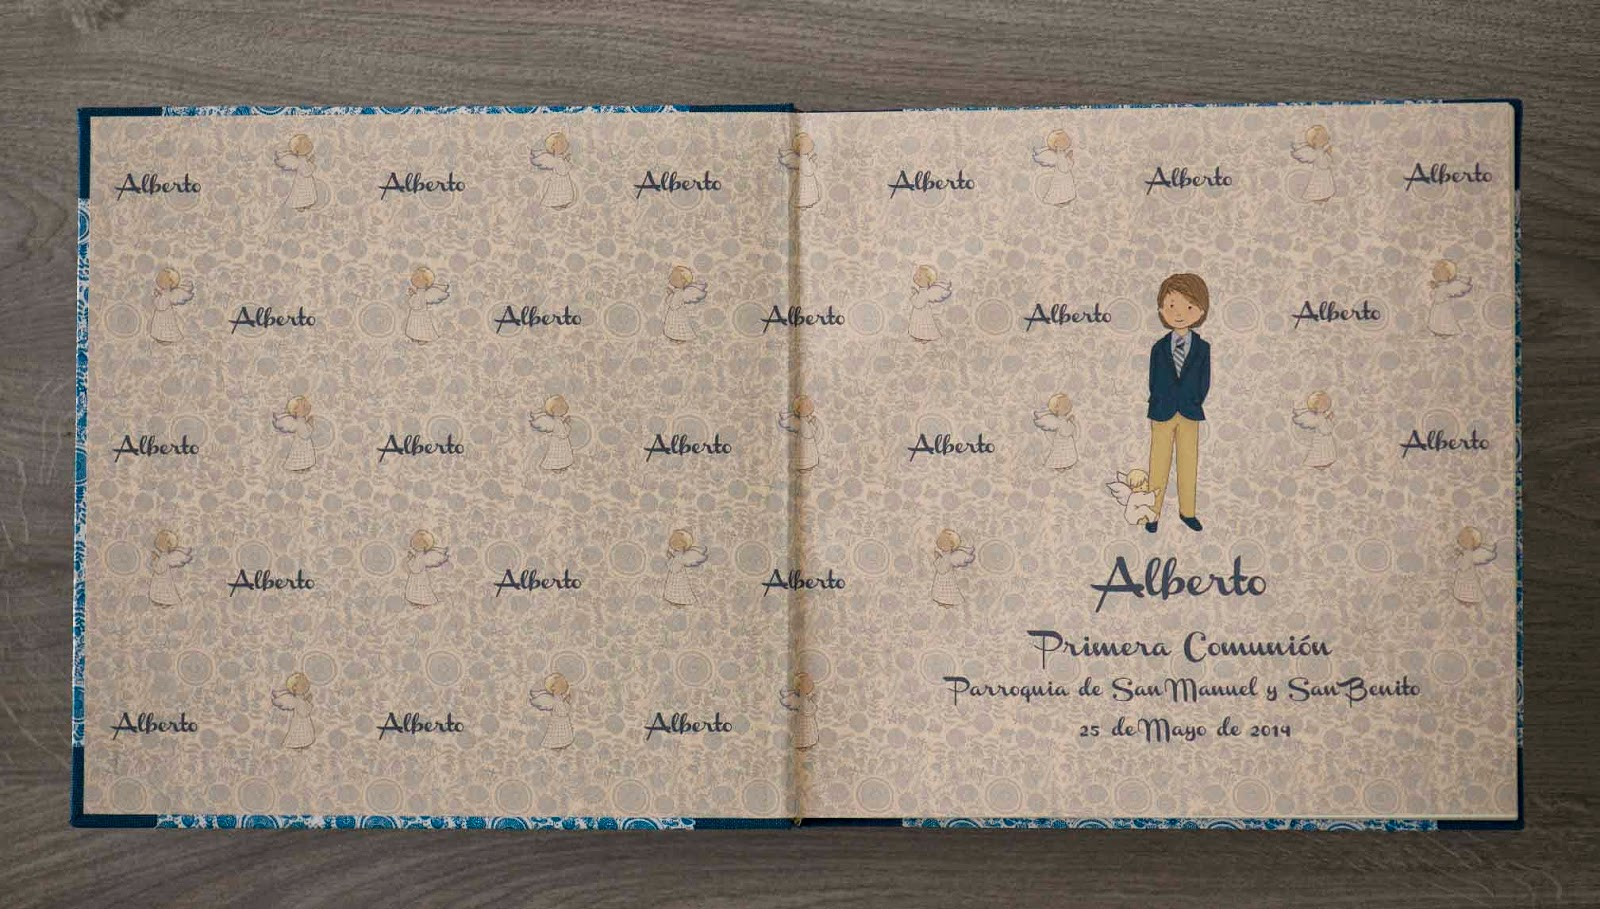 suitbook, album fotos, album comunion, encuadernacion, bookbinding, handmade